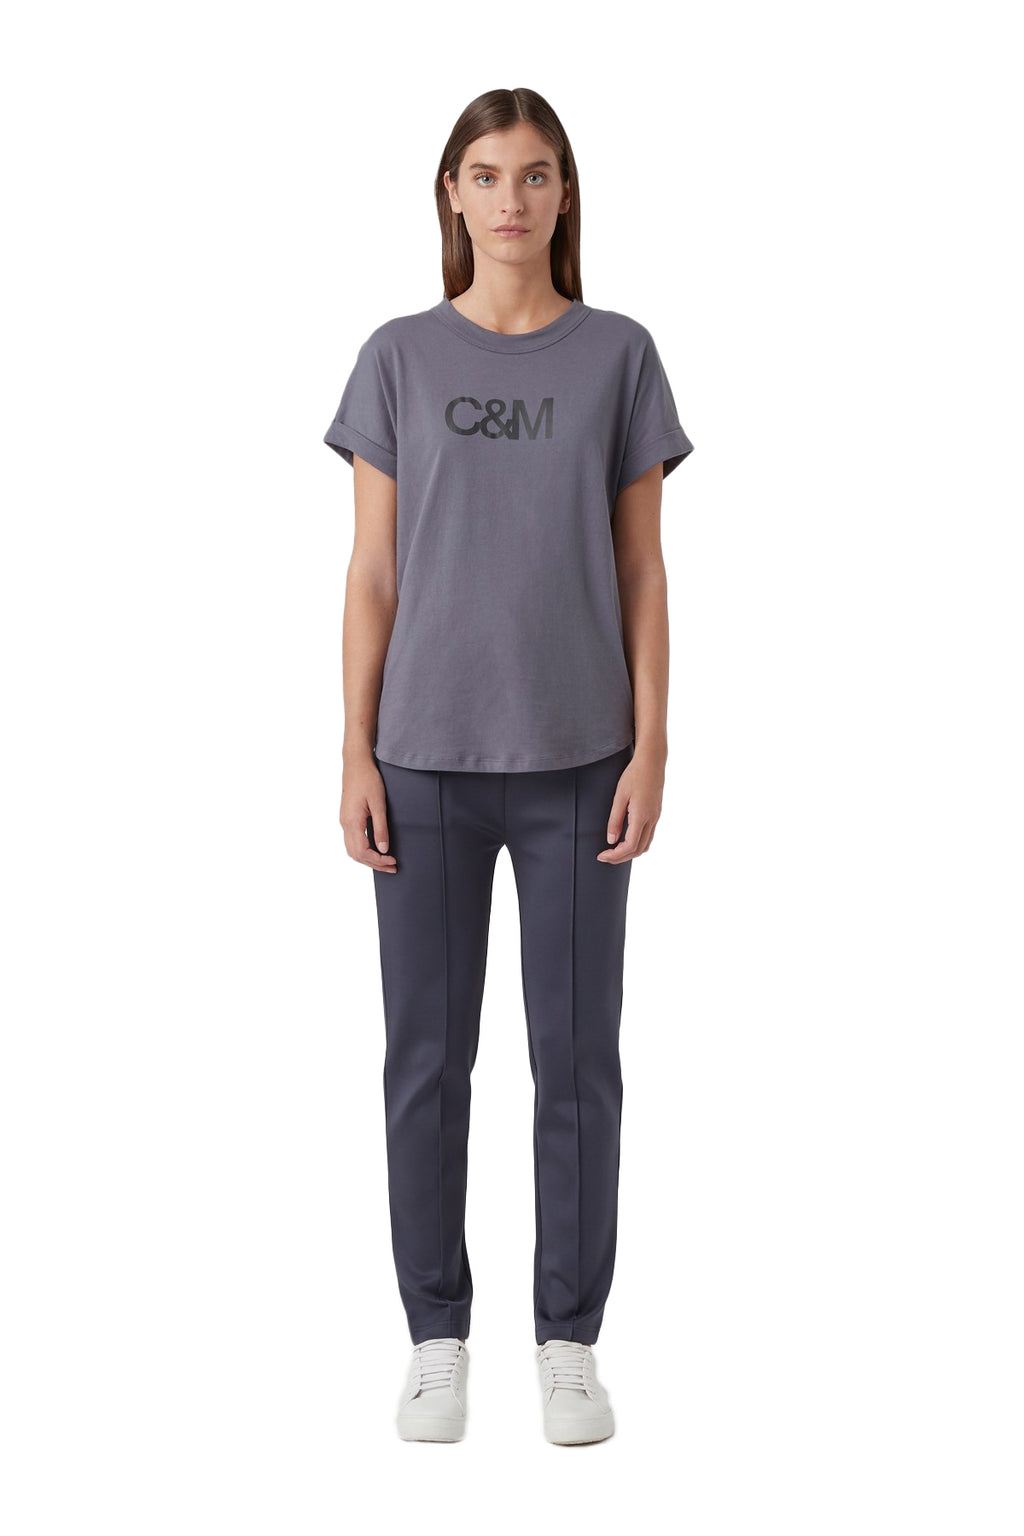 Camilla and Marc Huntington Tee in Navy Slate